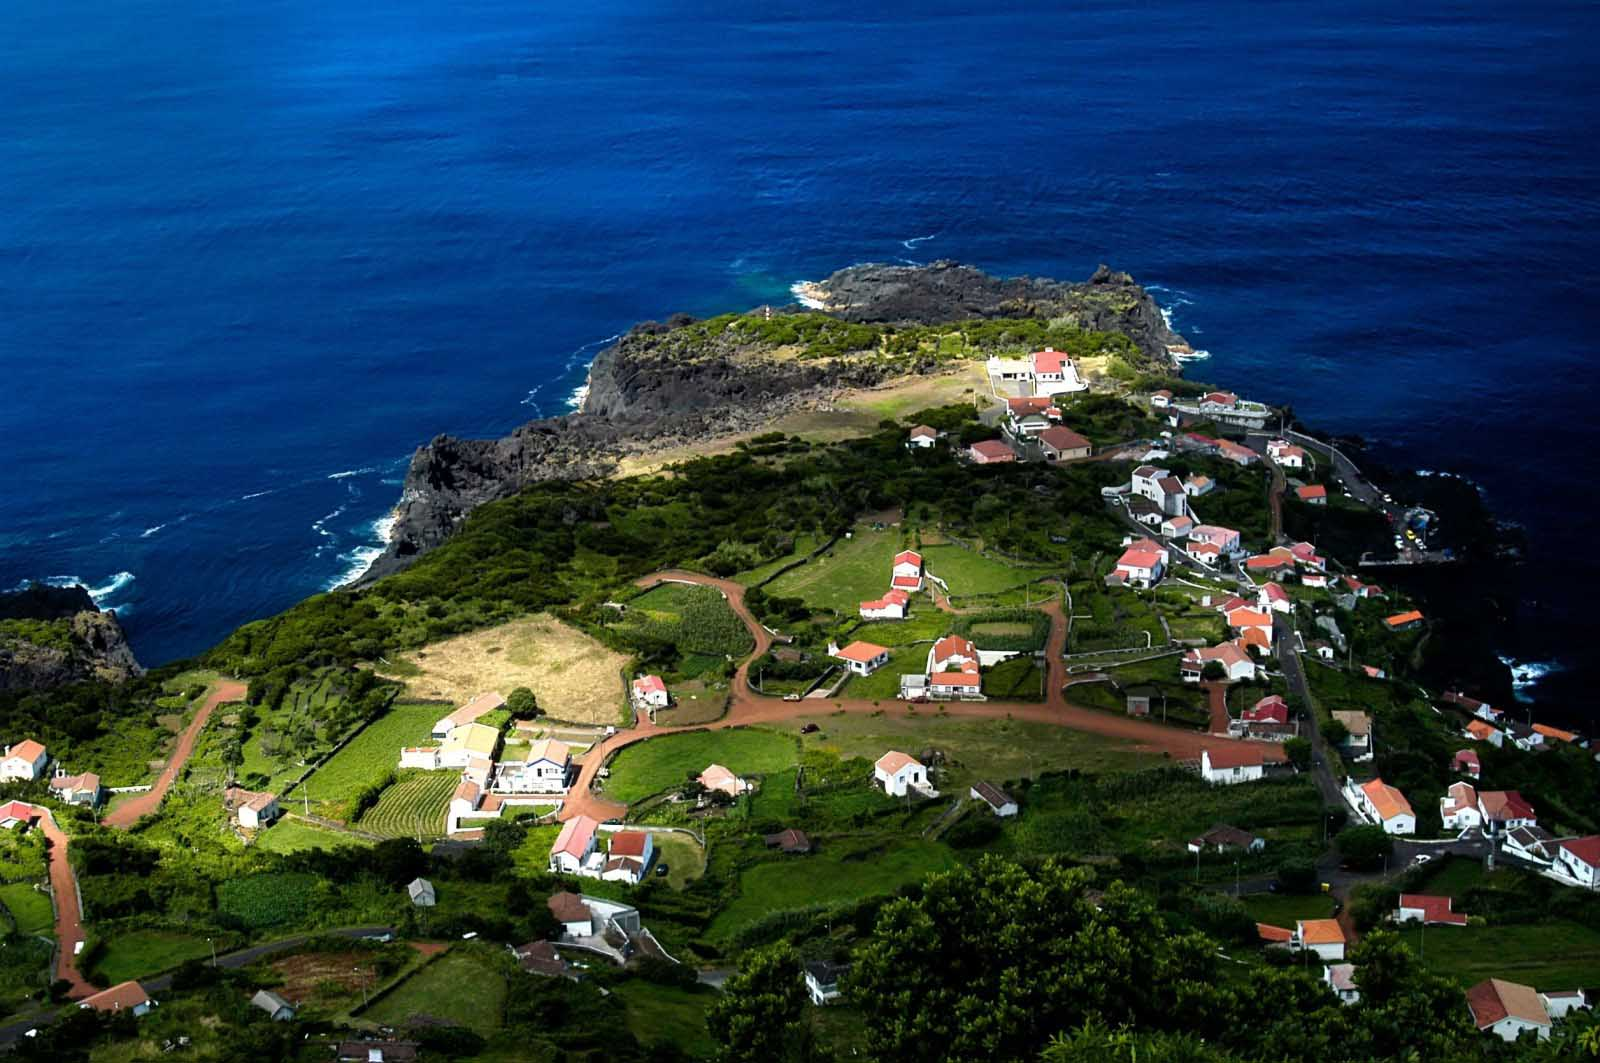 faja-village-at-the-coast-in-sao-jorge-island-azores-portugal whale watching